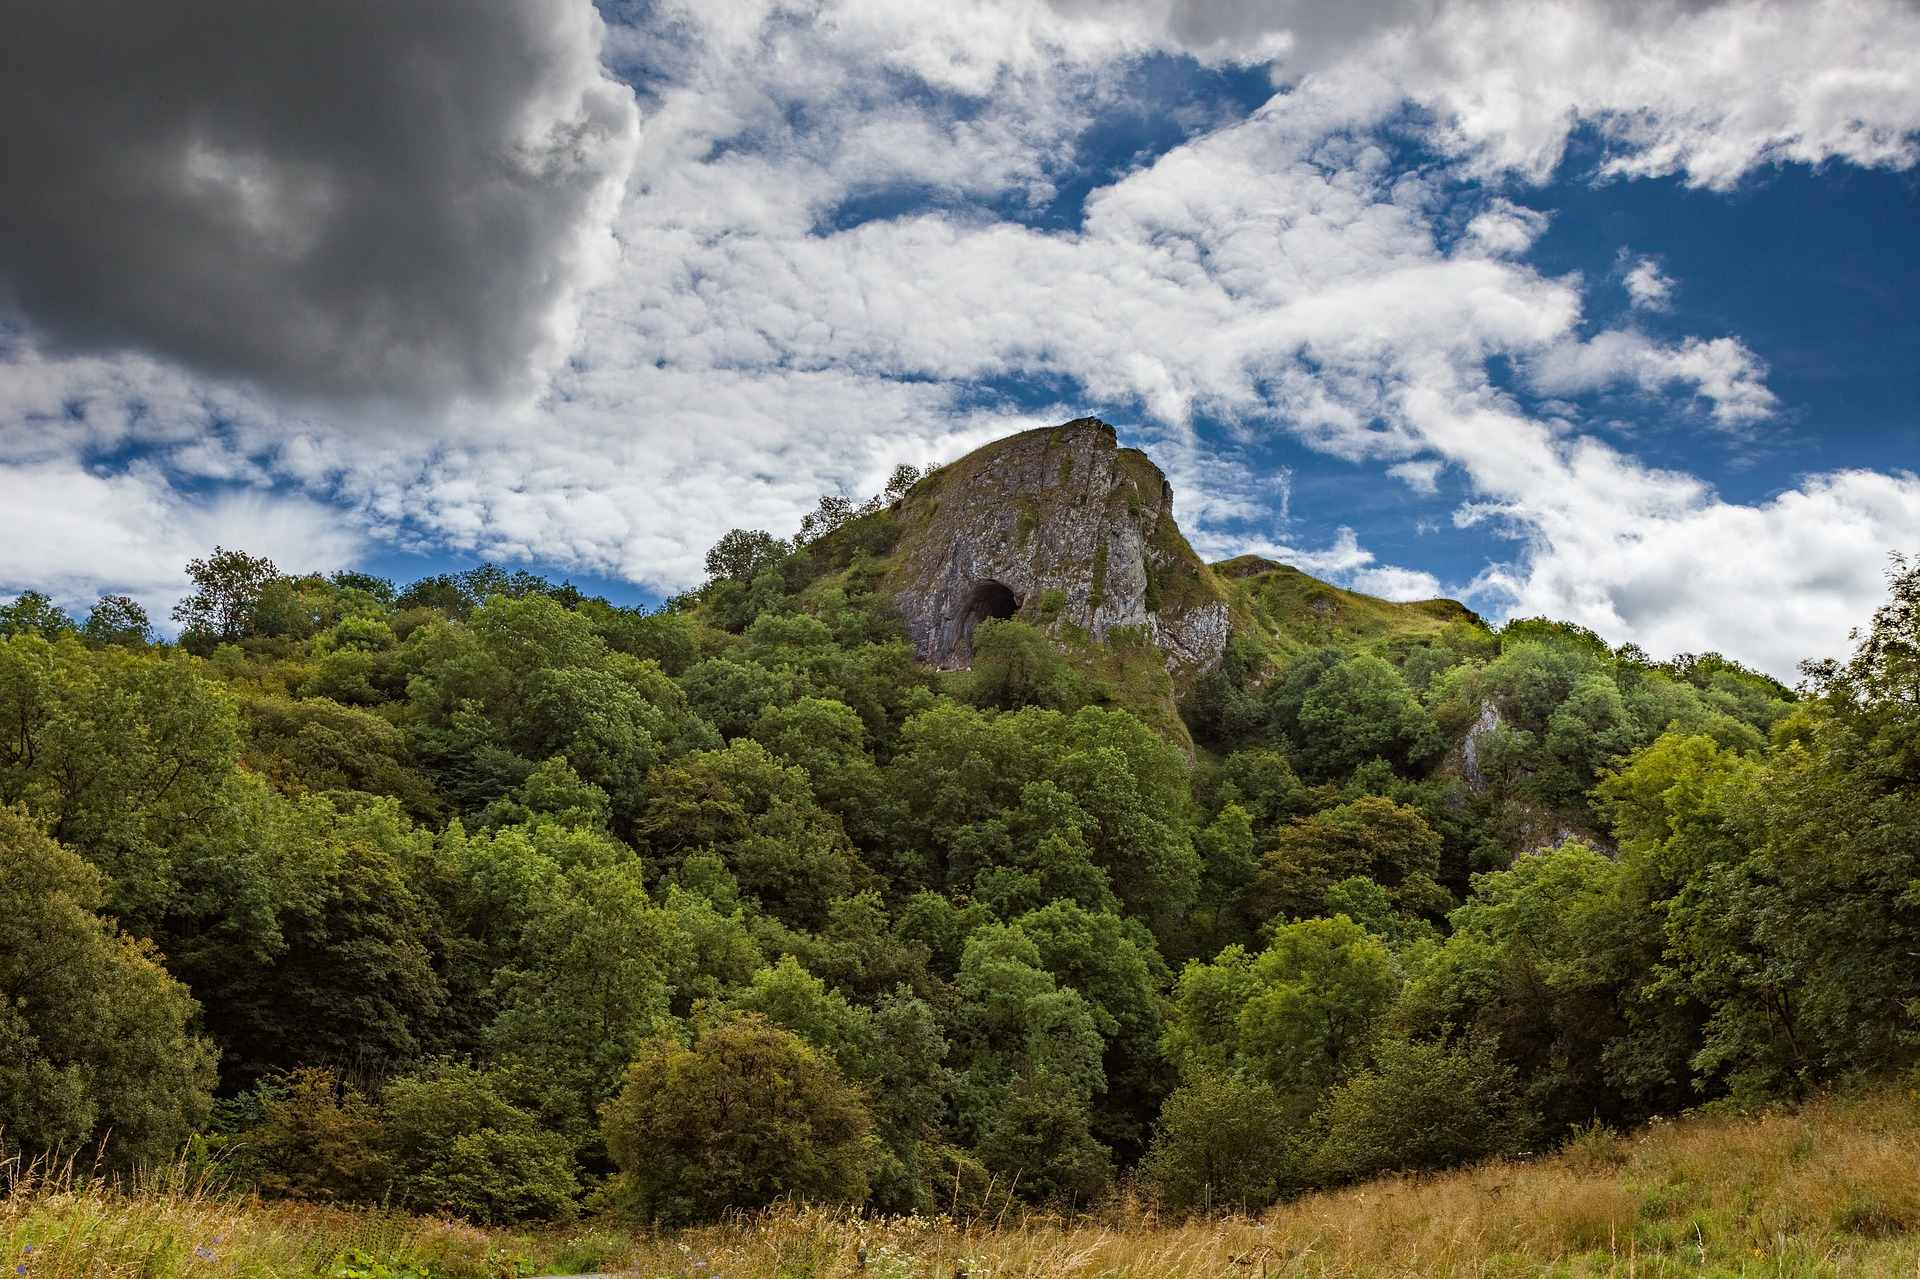 thors-cave-at-top-of-green-hill-on-cloudy-day